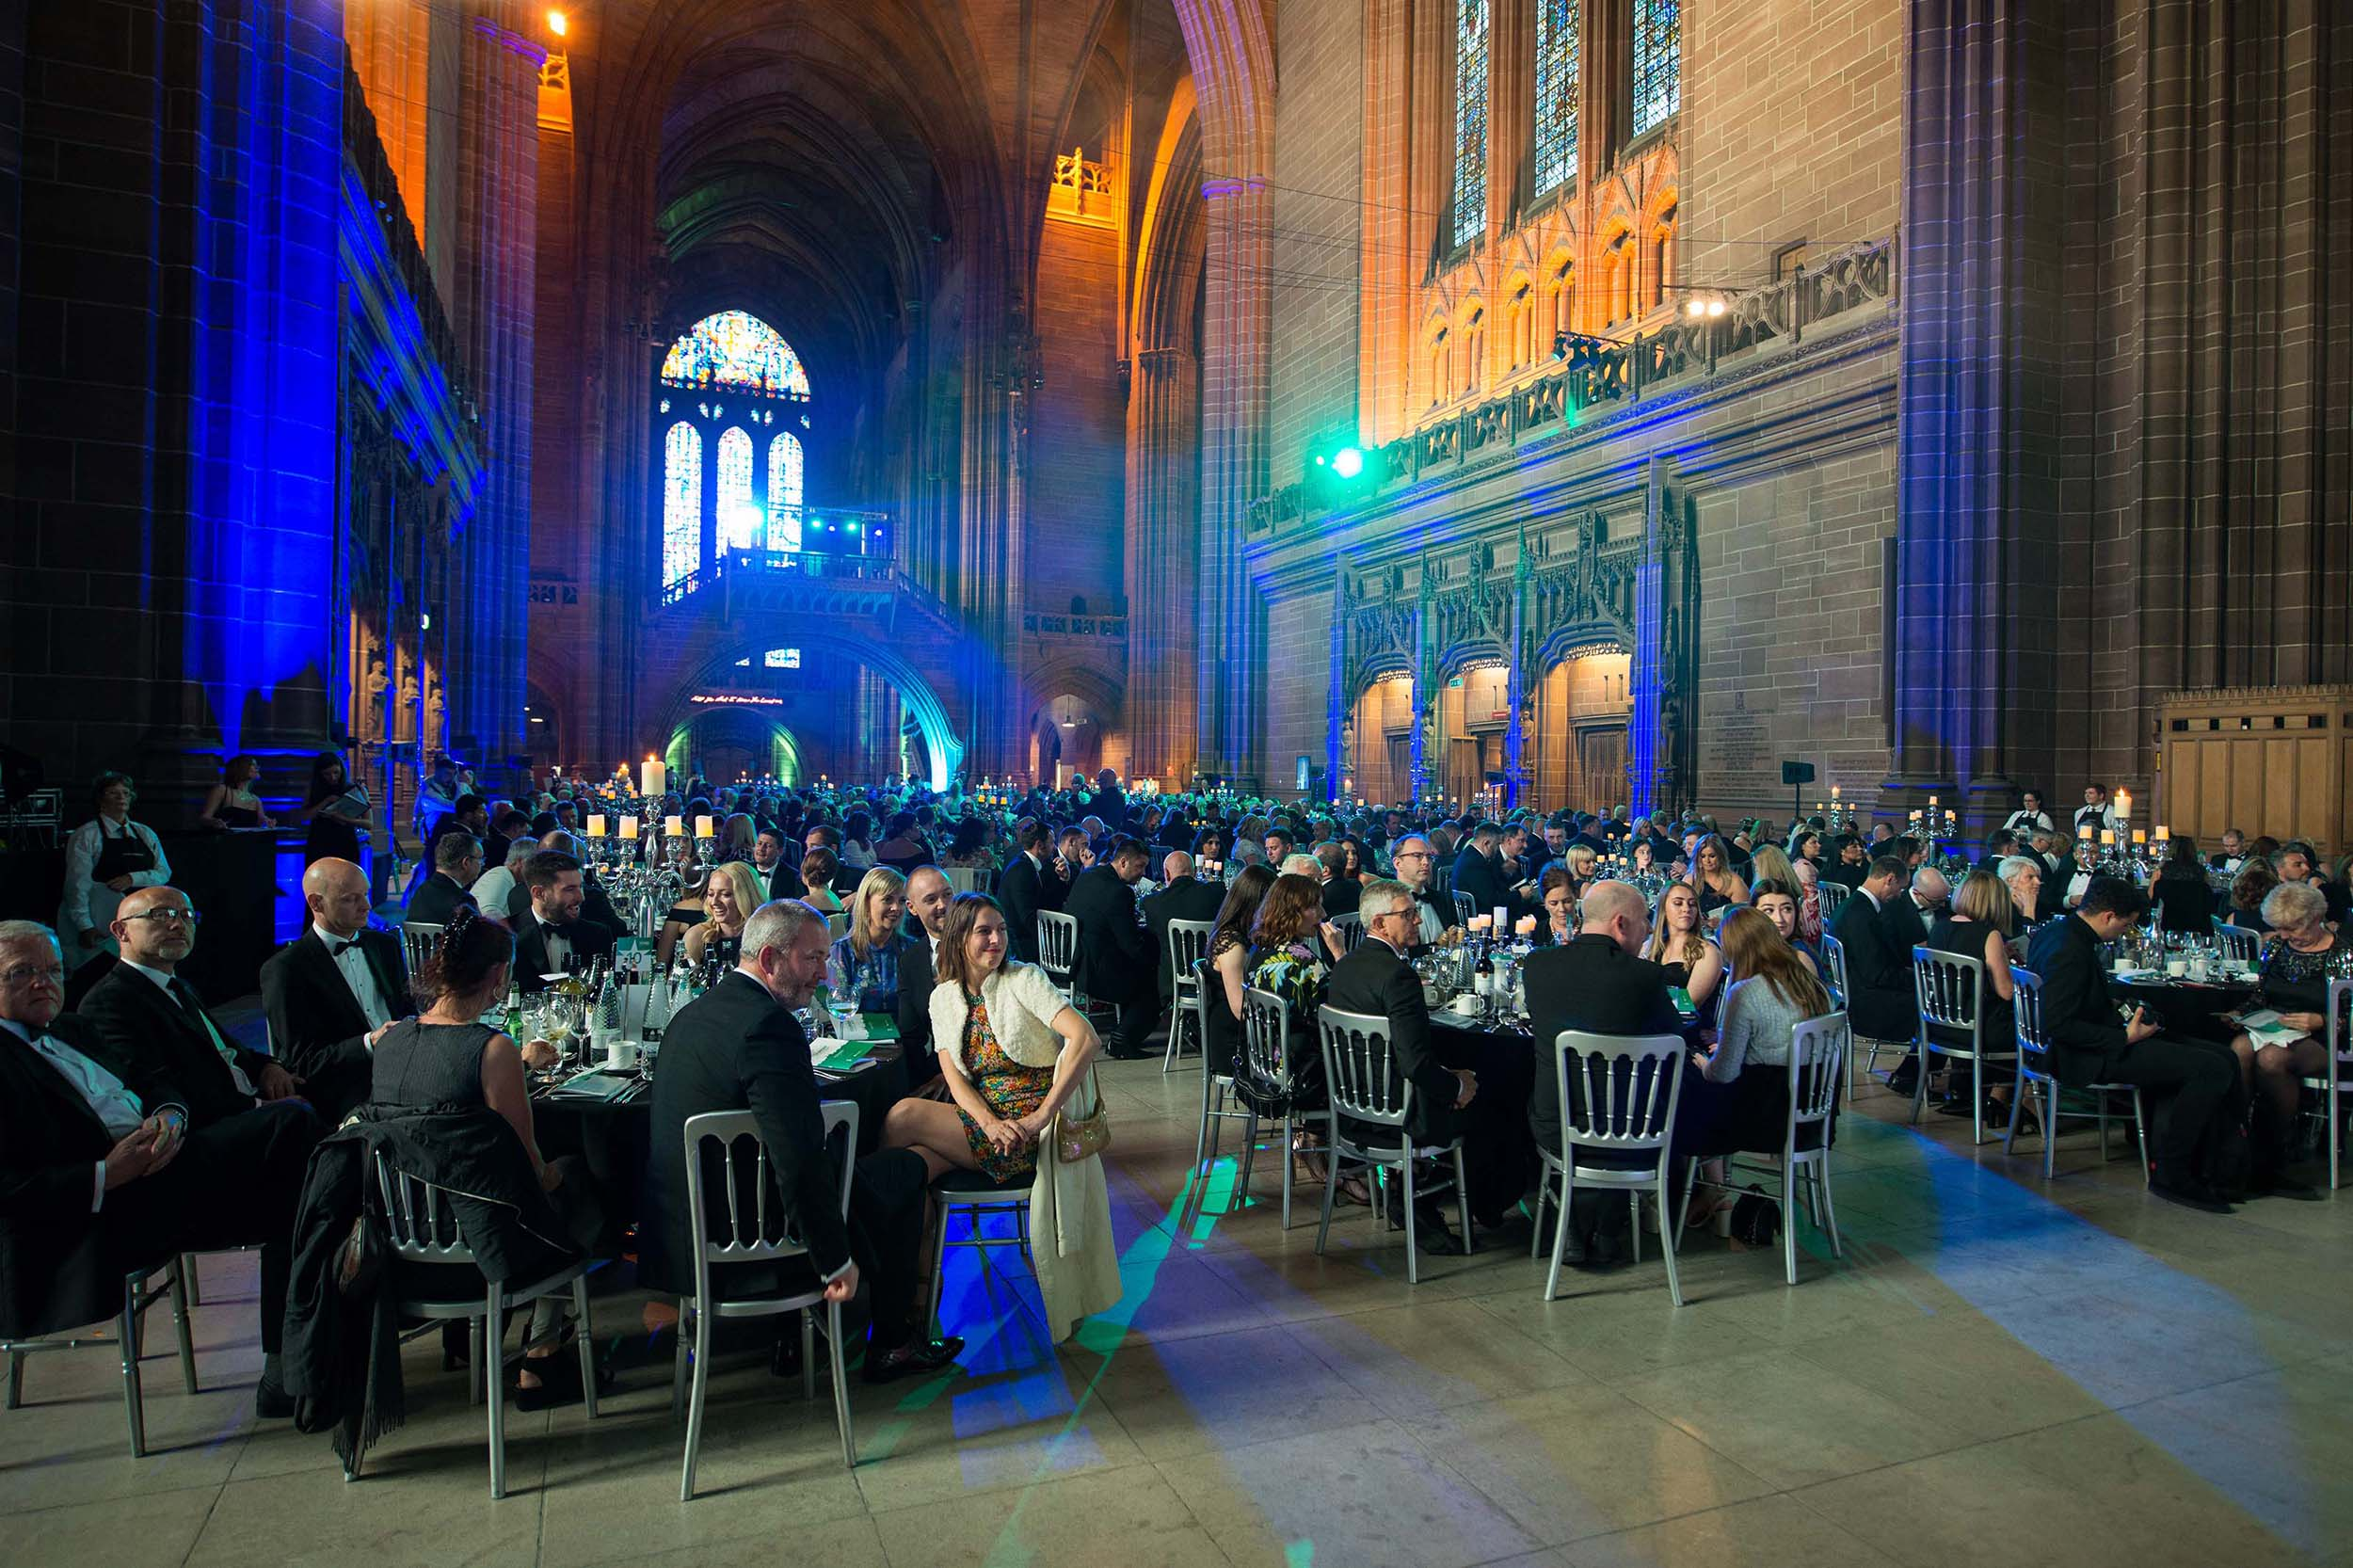 Awards event Photographer Manchester at Liverpool Tourism awards Liverpool Cathedral 2019 Spark drummers